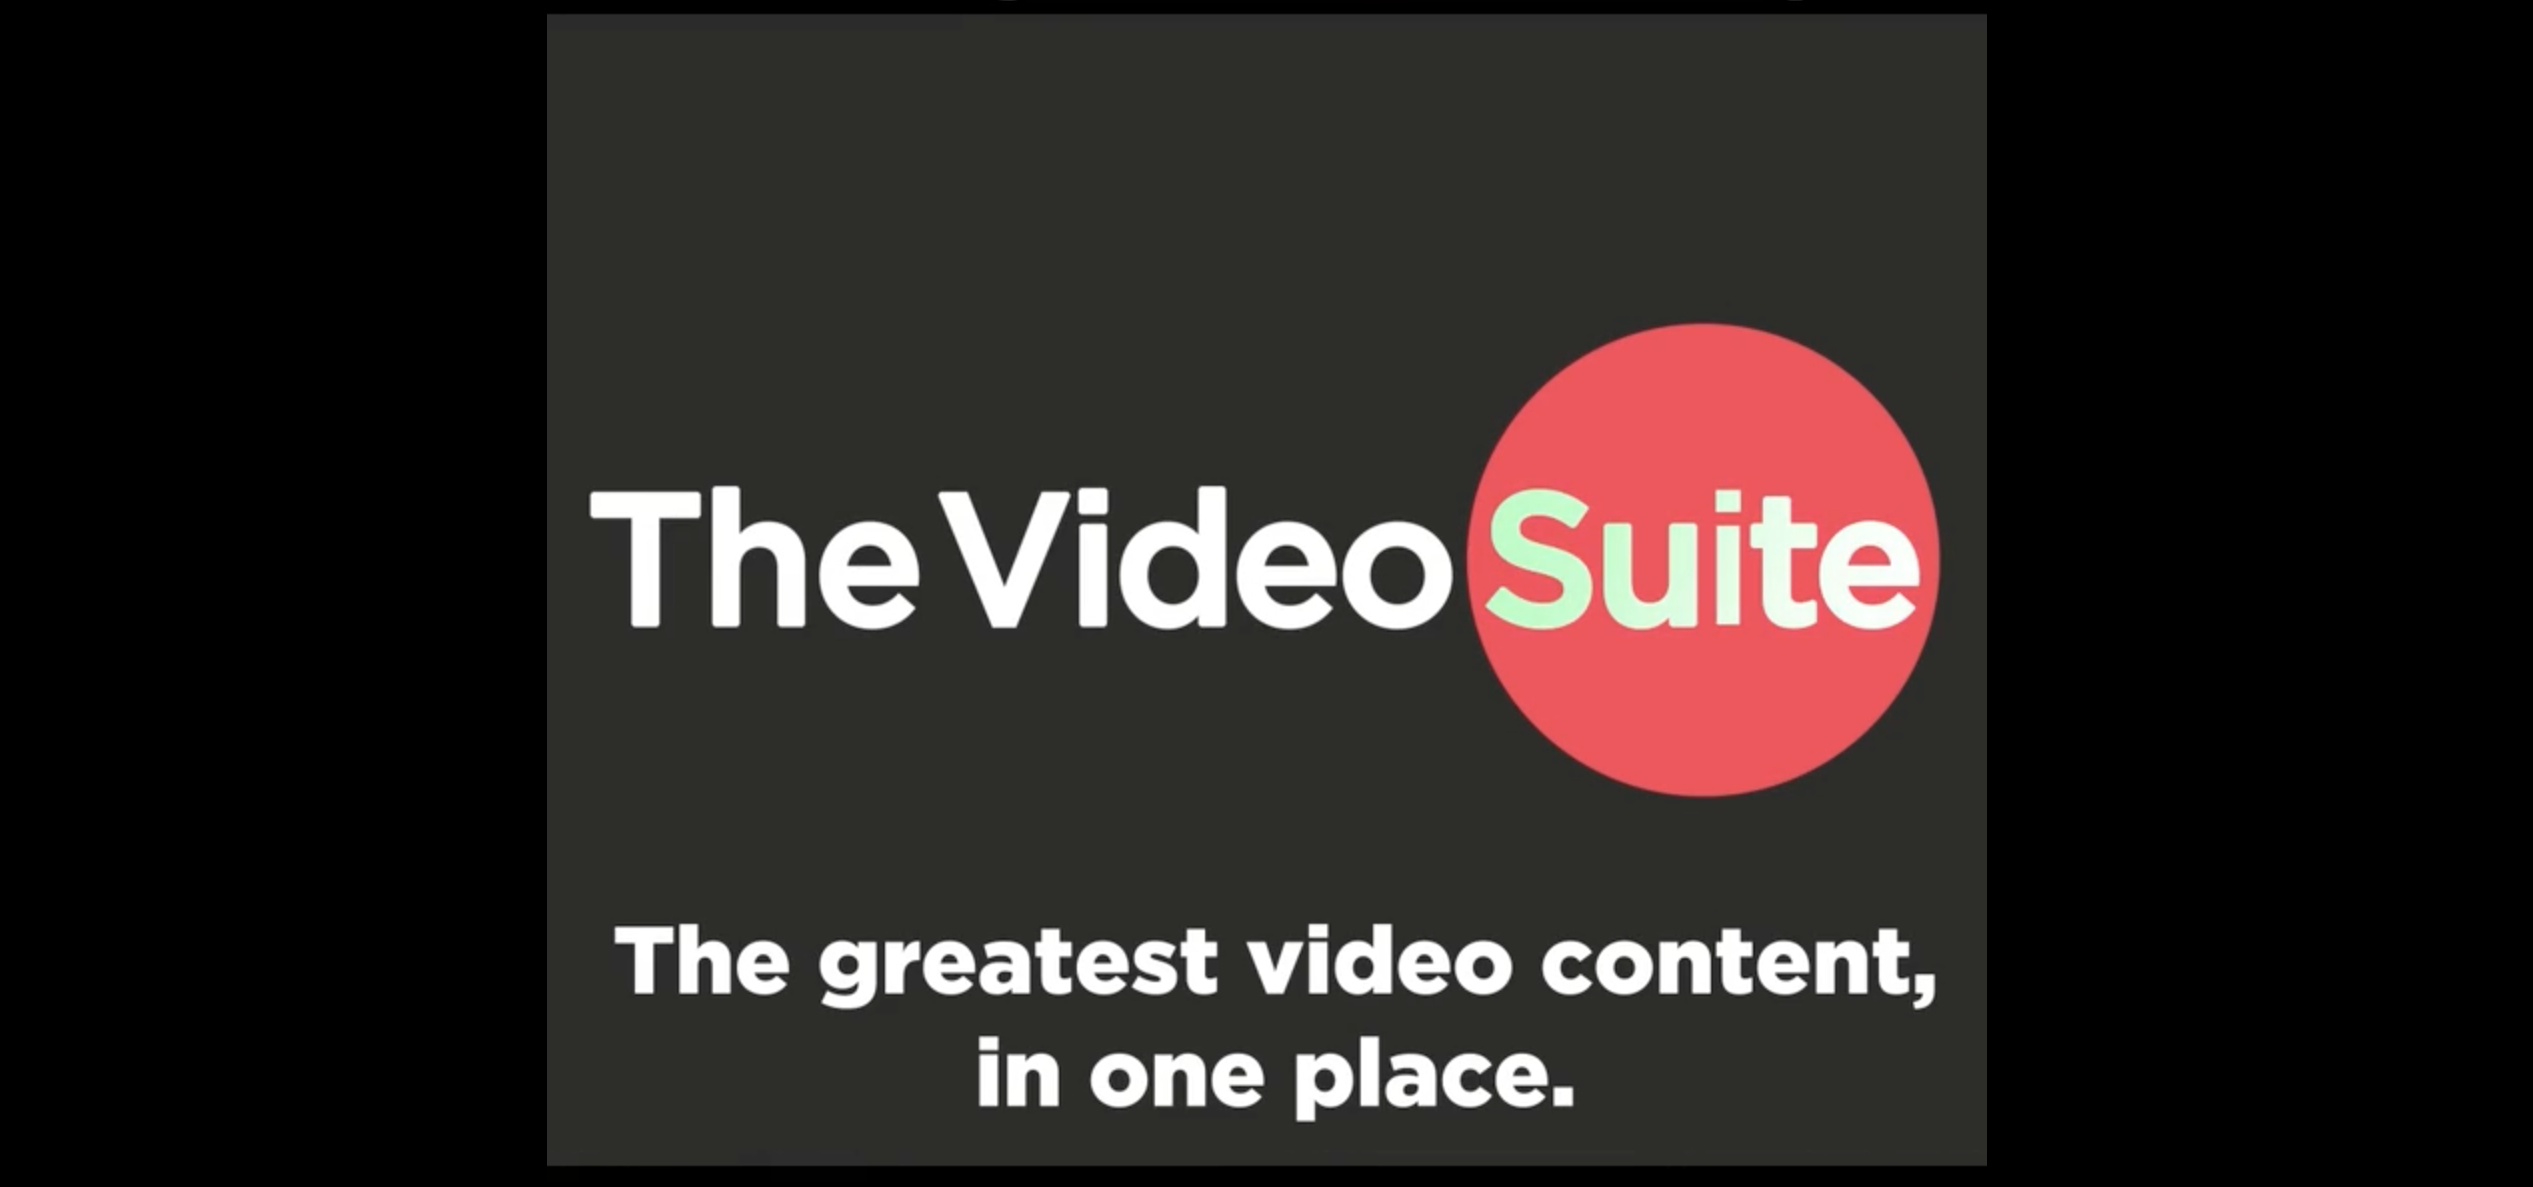 Introducing The Video Suite